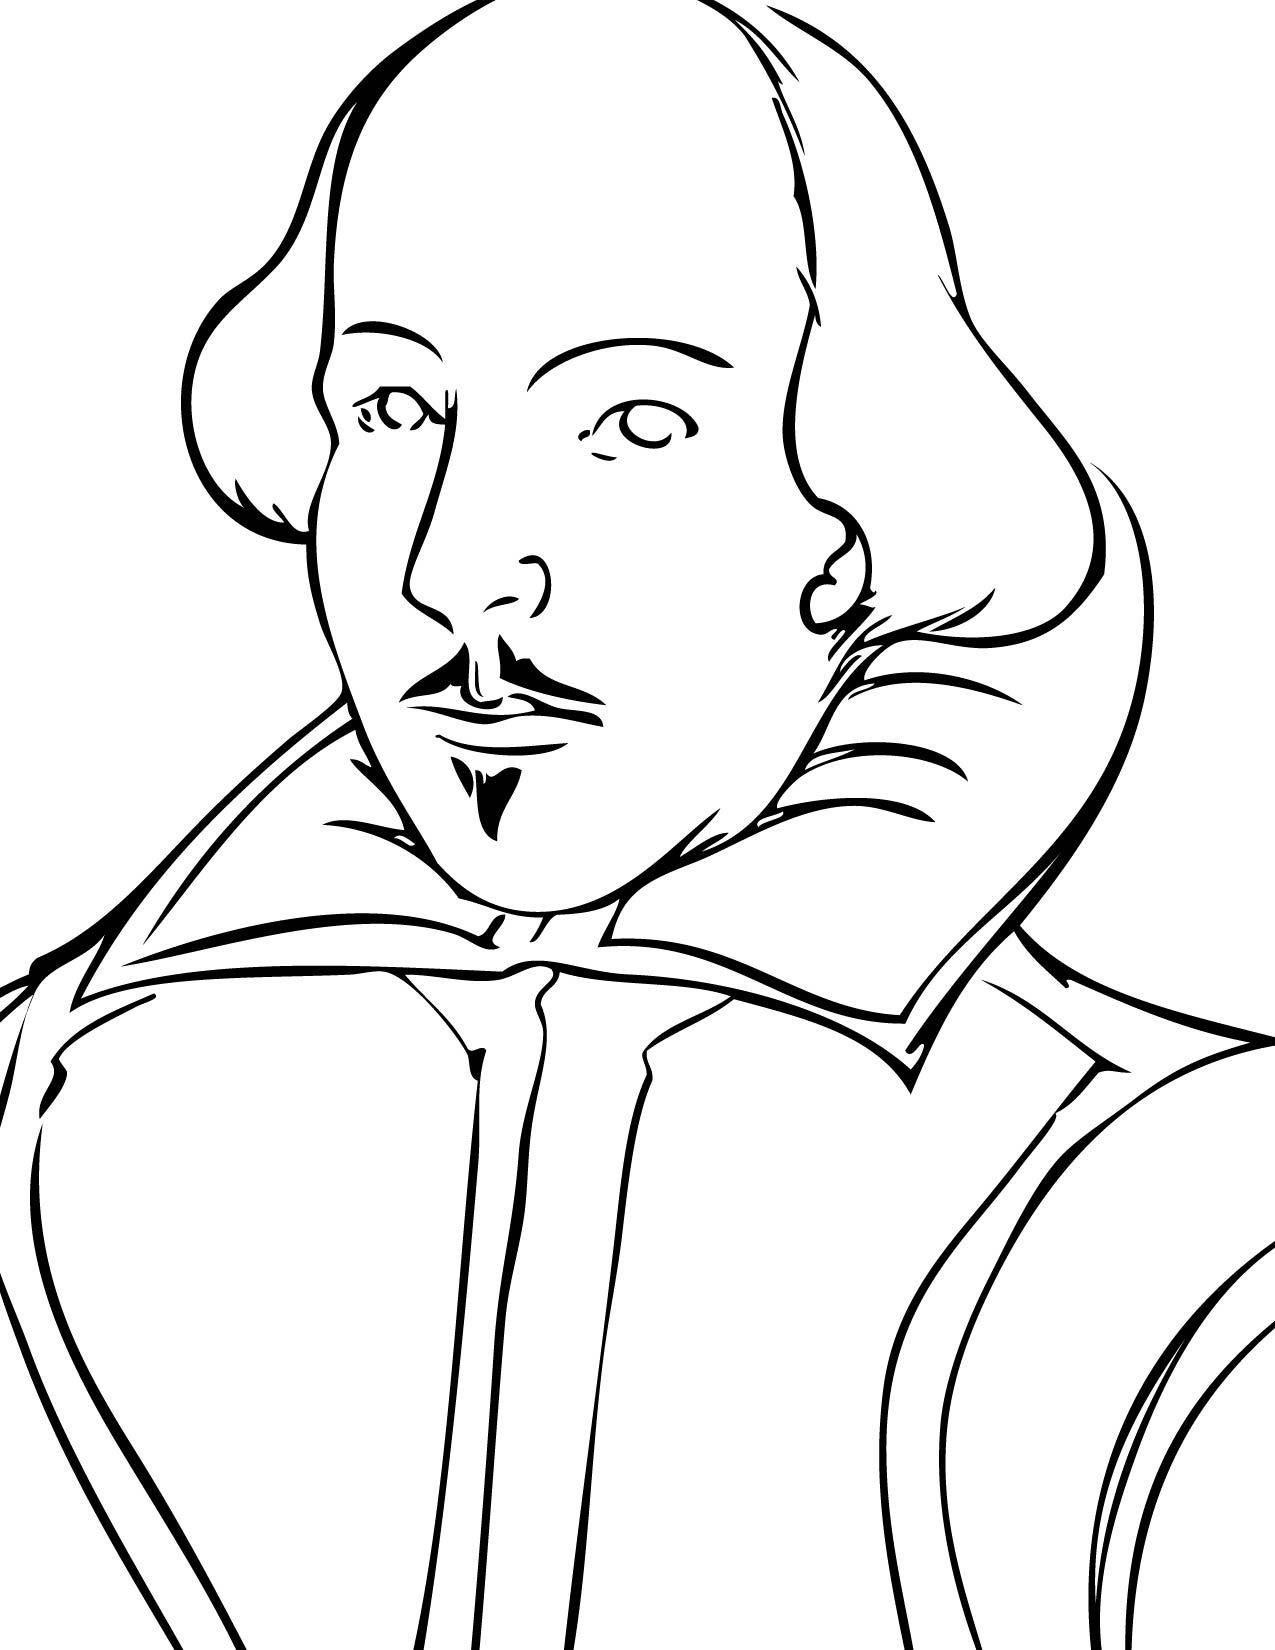 good coloring page of shakespeare s face if you have to do a good coloring page of shakespeare s face if you have to do a project or